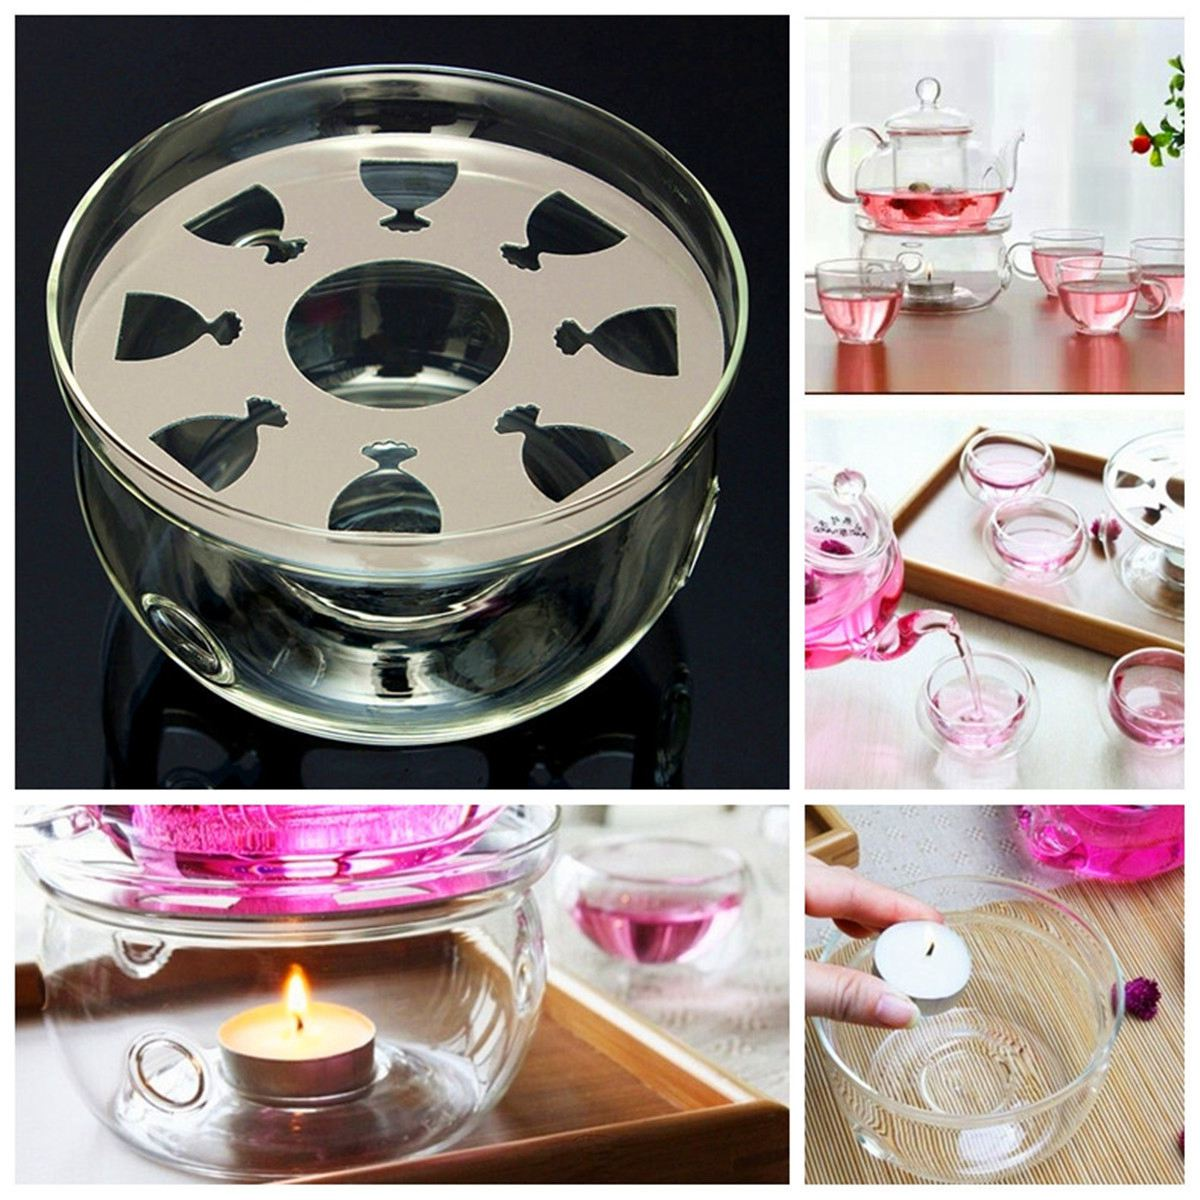 Practical Boutique Heat-Resisting Teapot Warmer Base Clear Glass Round Shape Insulation Tealight